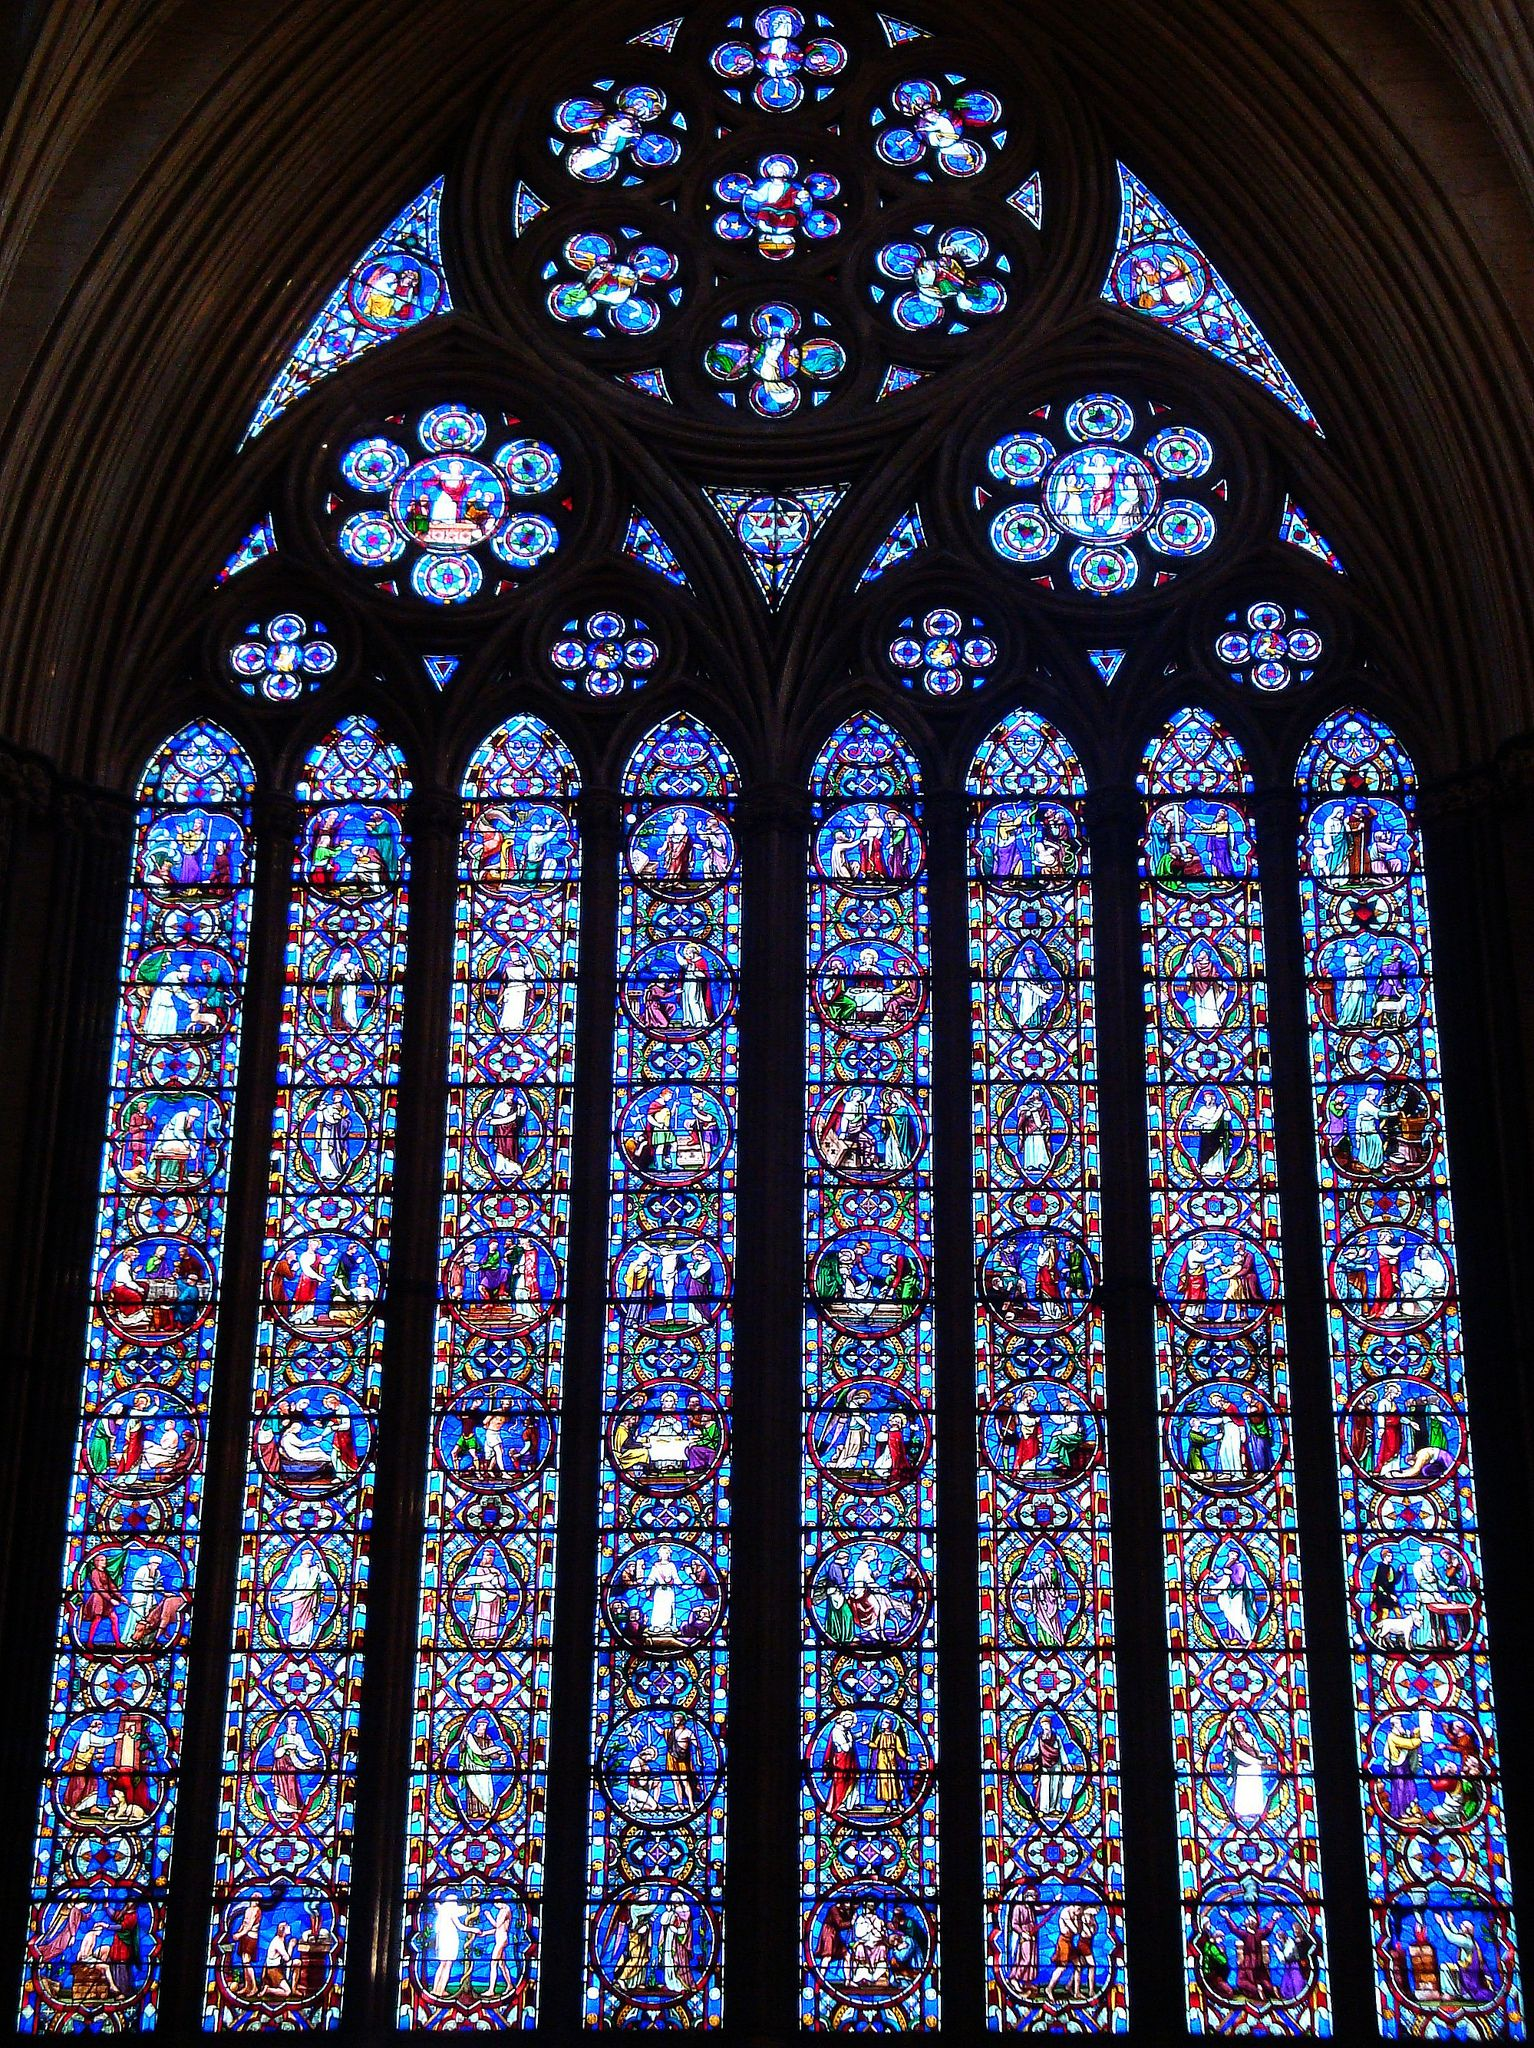 Lincoln Cathedral Stained Glass Window Stainedglasscathedral Catedral Gotica Vidrieras Catedral